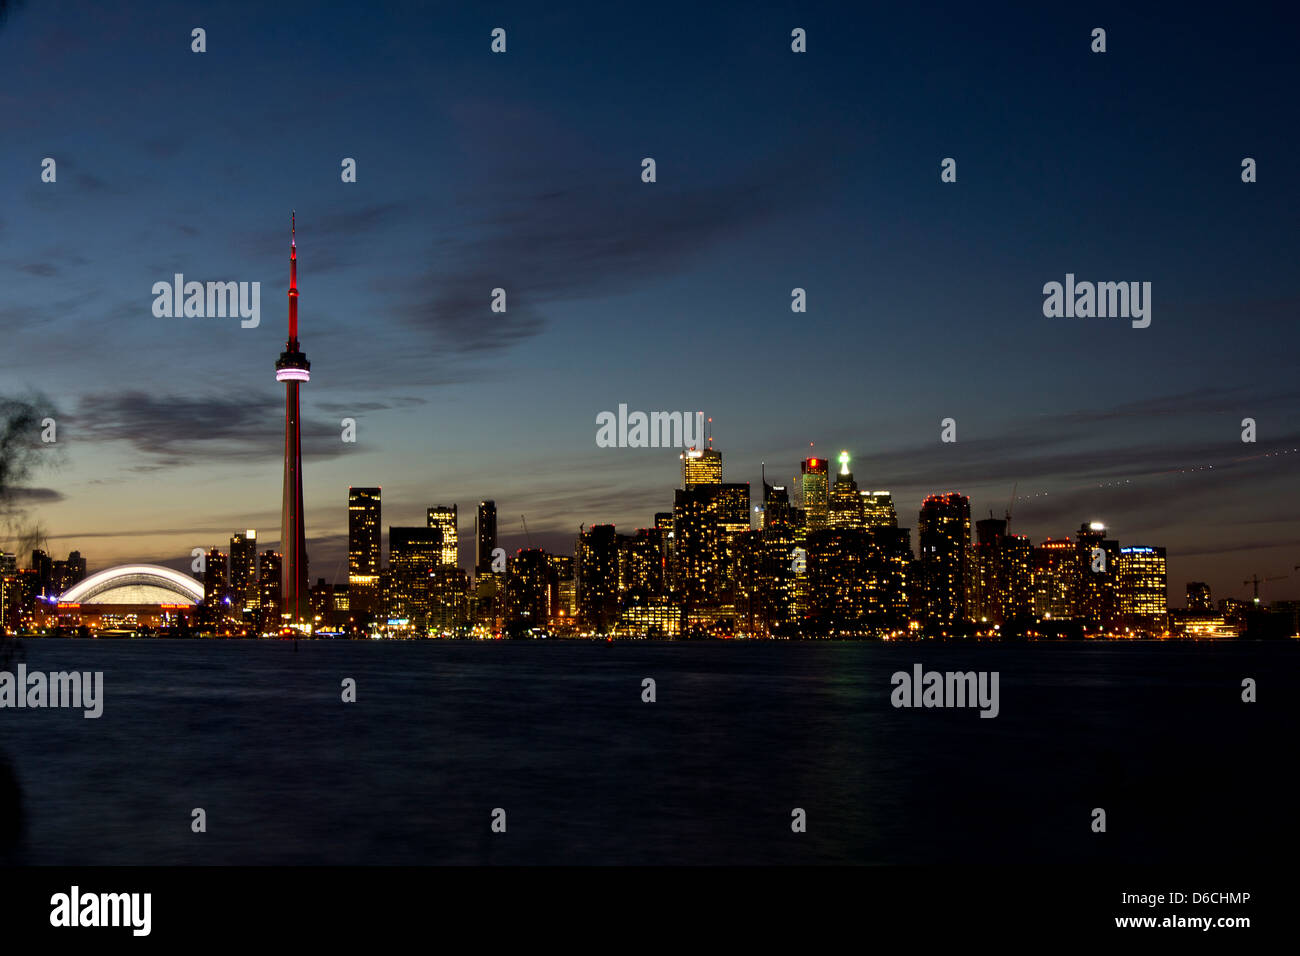 Toronto skyline at dusk viewed from the Harbour Islands - Stock Image